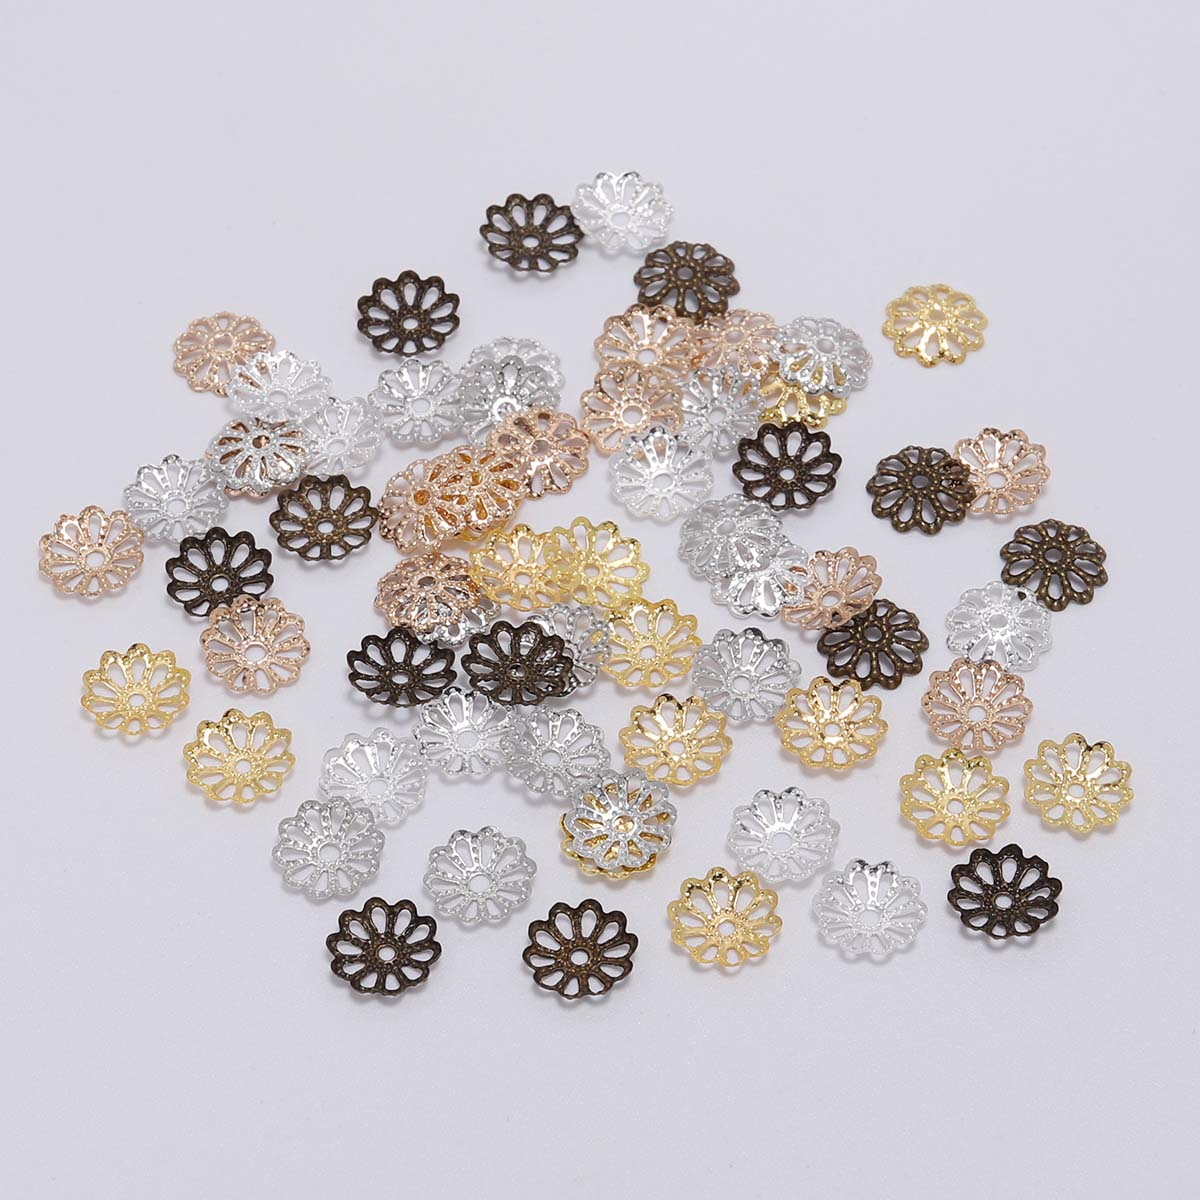 200pcs/lot 7mm 9mm Silver Gold Plated Bulk Metal Flower Petal End Spacer Beads Caps Charms Bead Cups For Jewelry Making Supplies